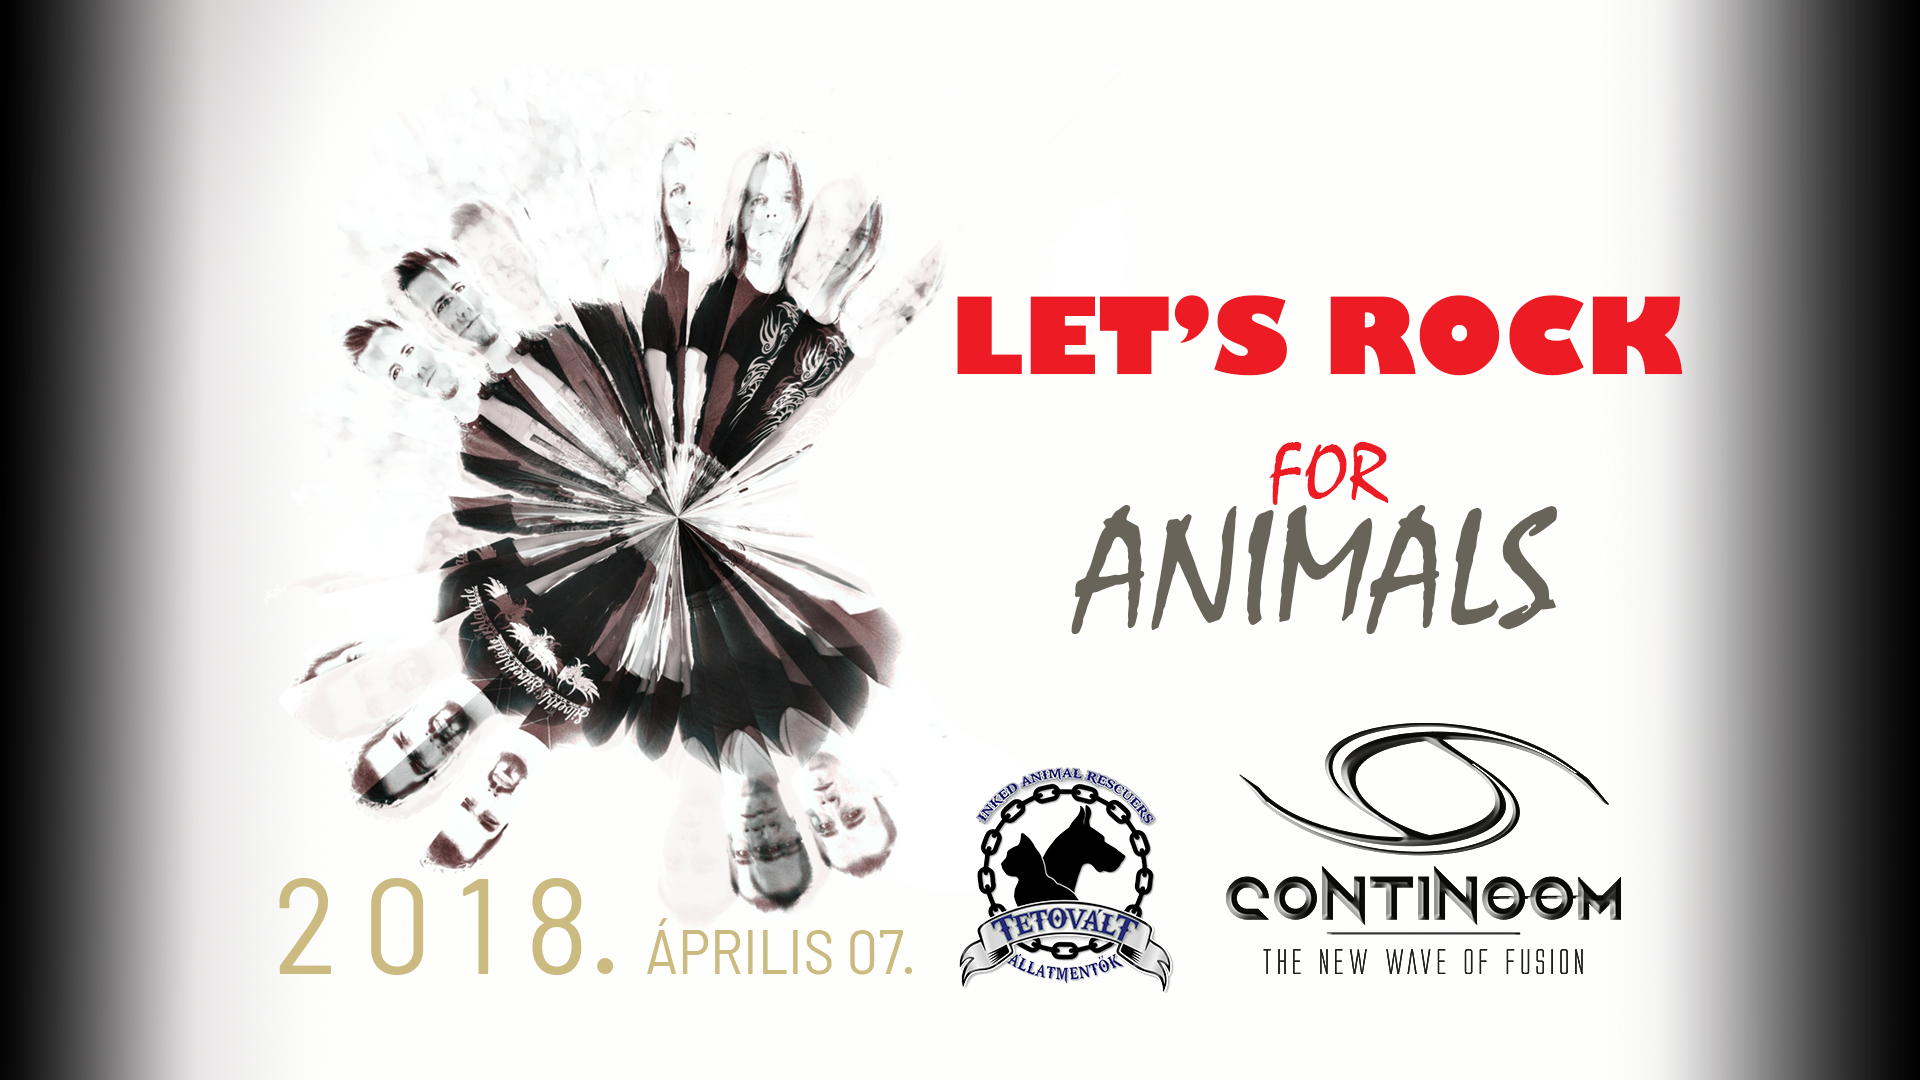 LET'S ROCK FOR ANIMALS!